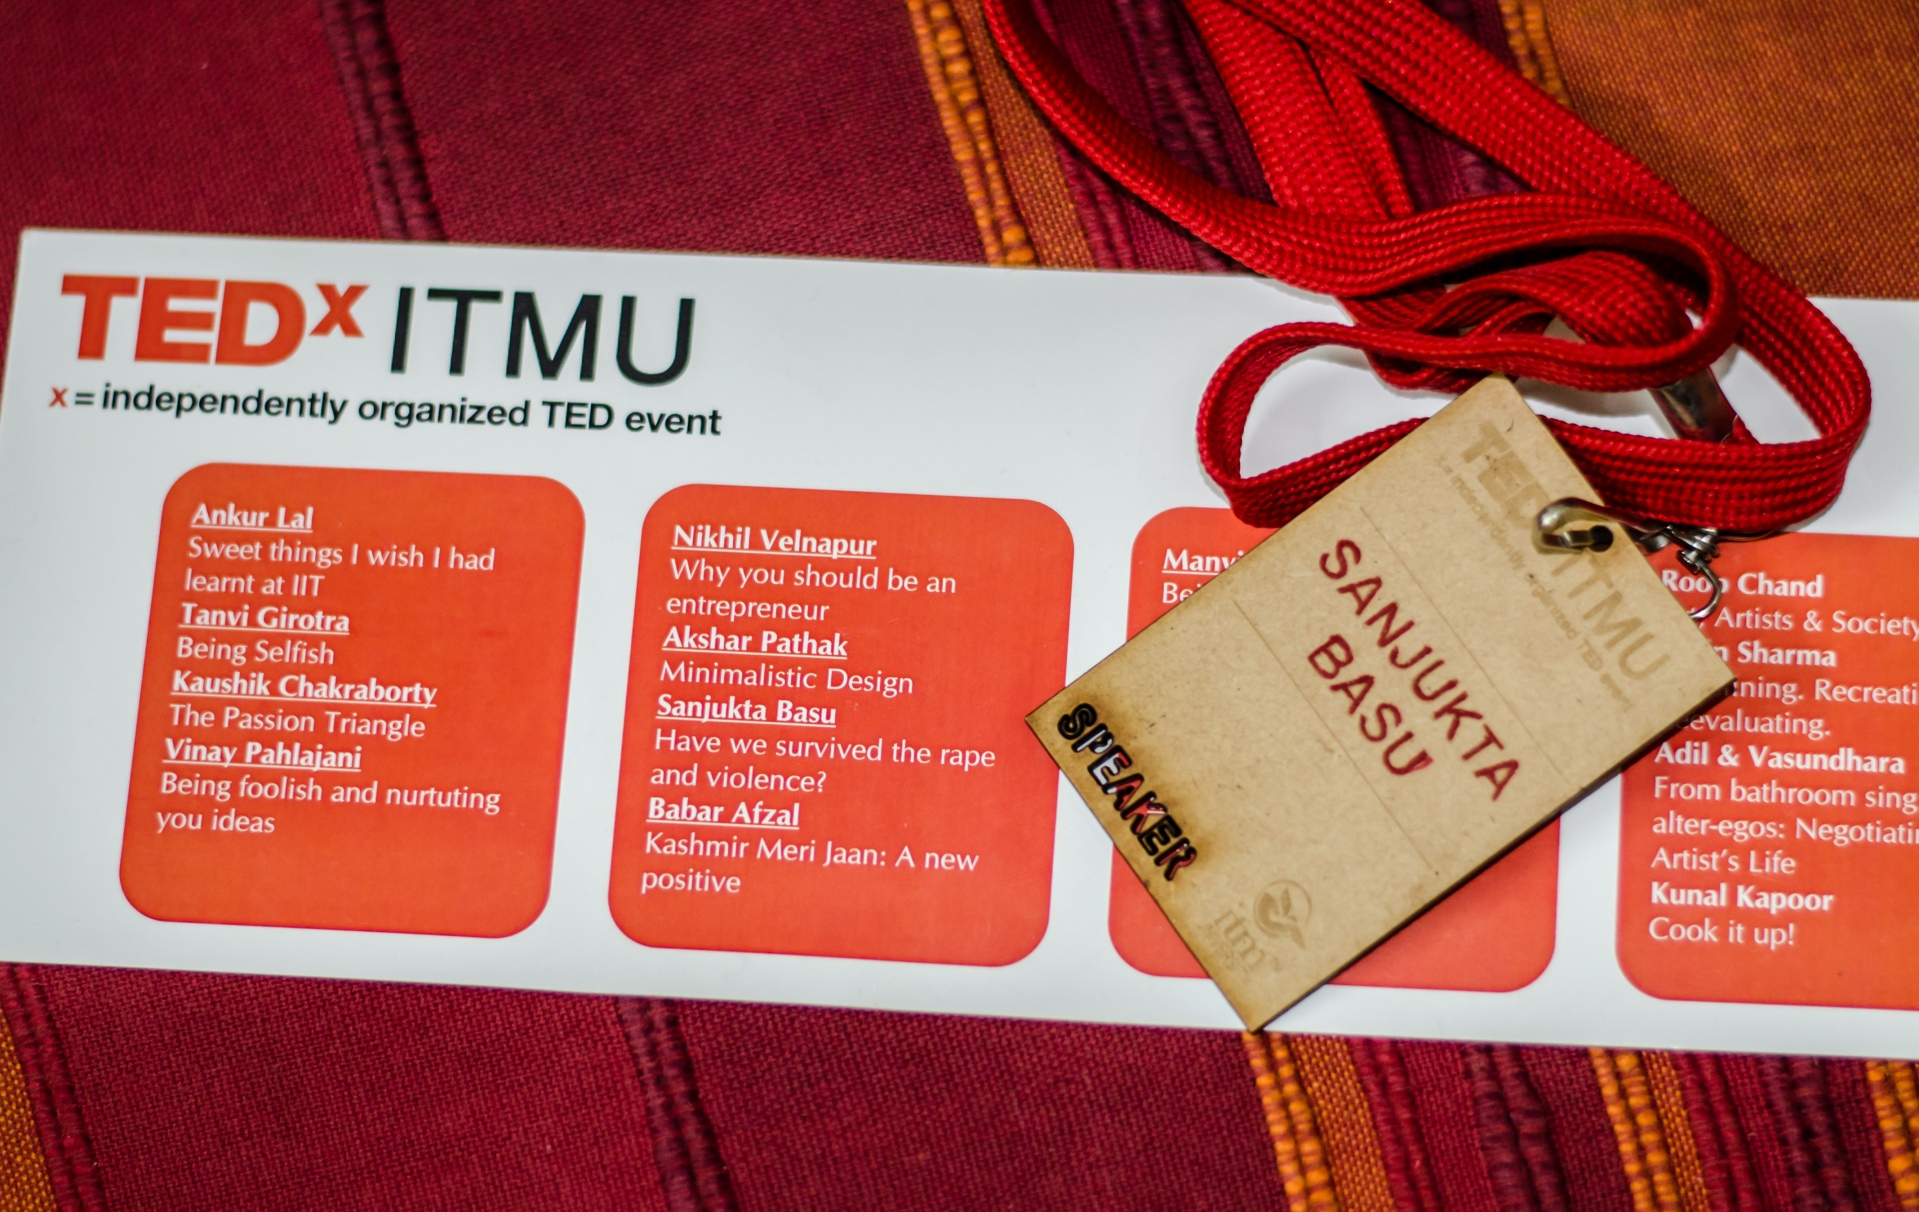 TEDxITMU talk by Sanjukta Basu